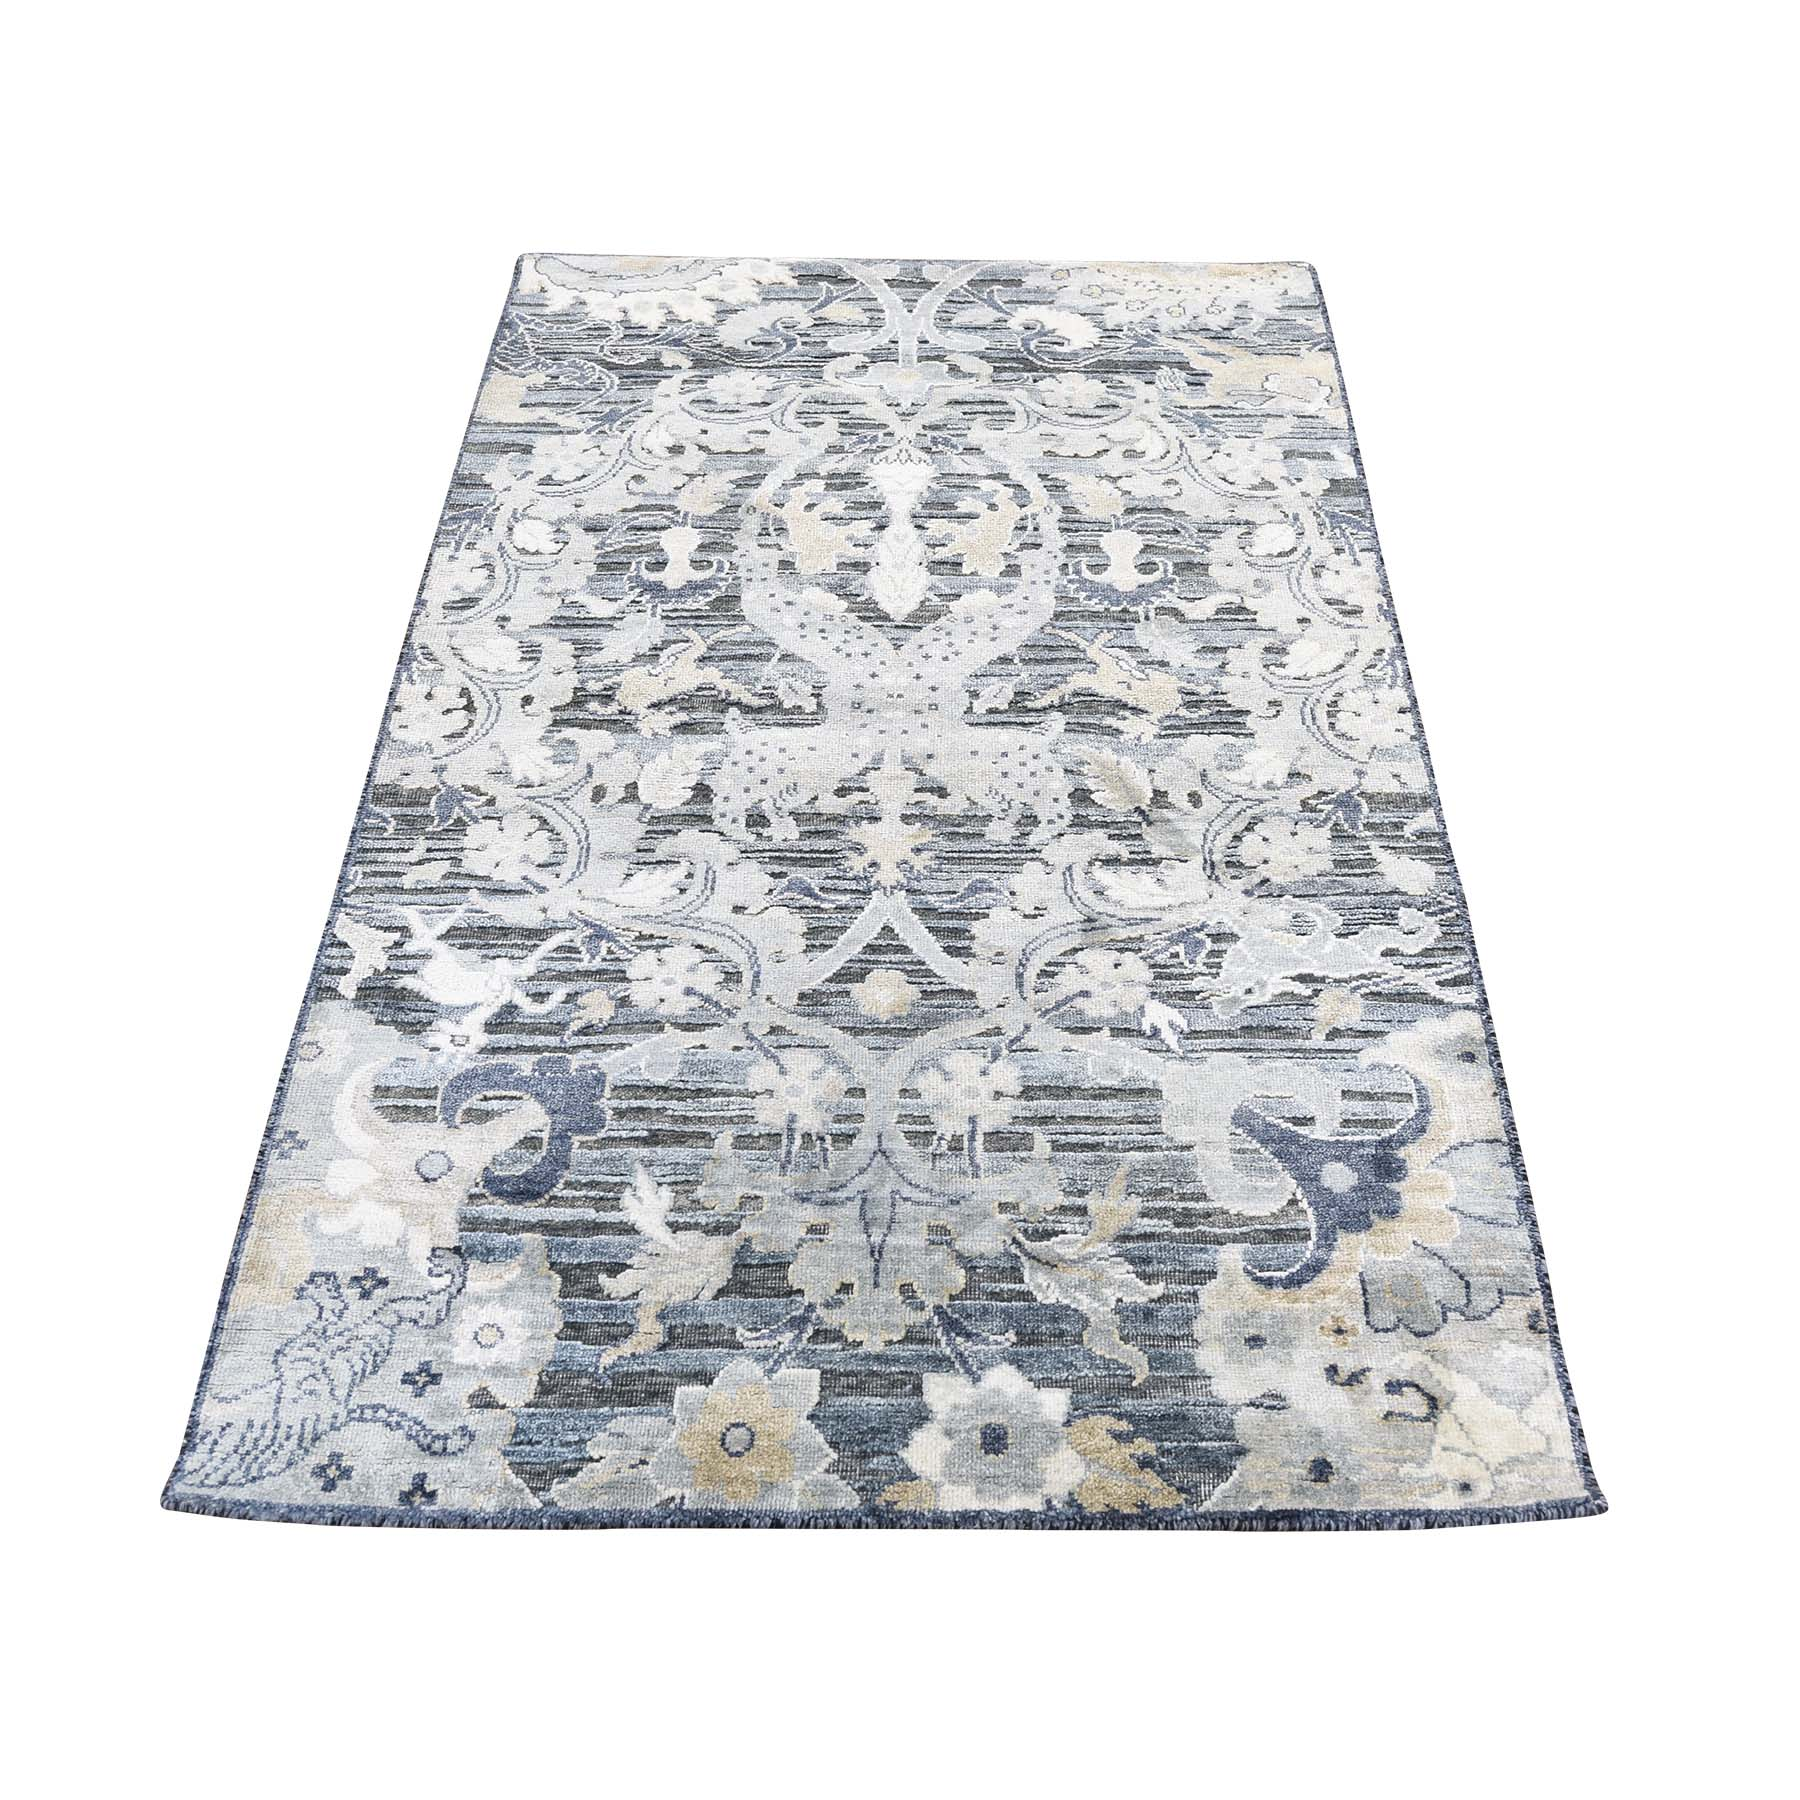 3-x5- Silk With Oxidized Wool Hunting Design Hand-Knotted Oriental Rug